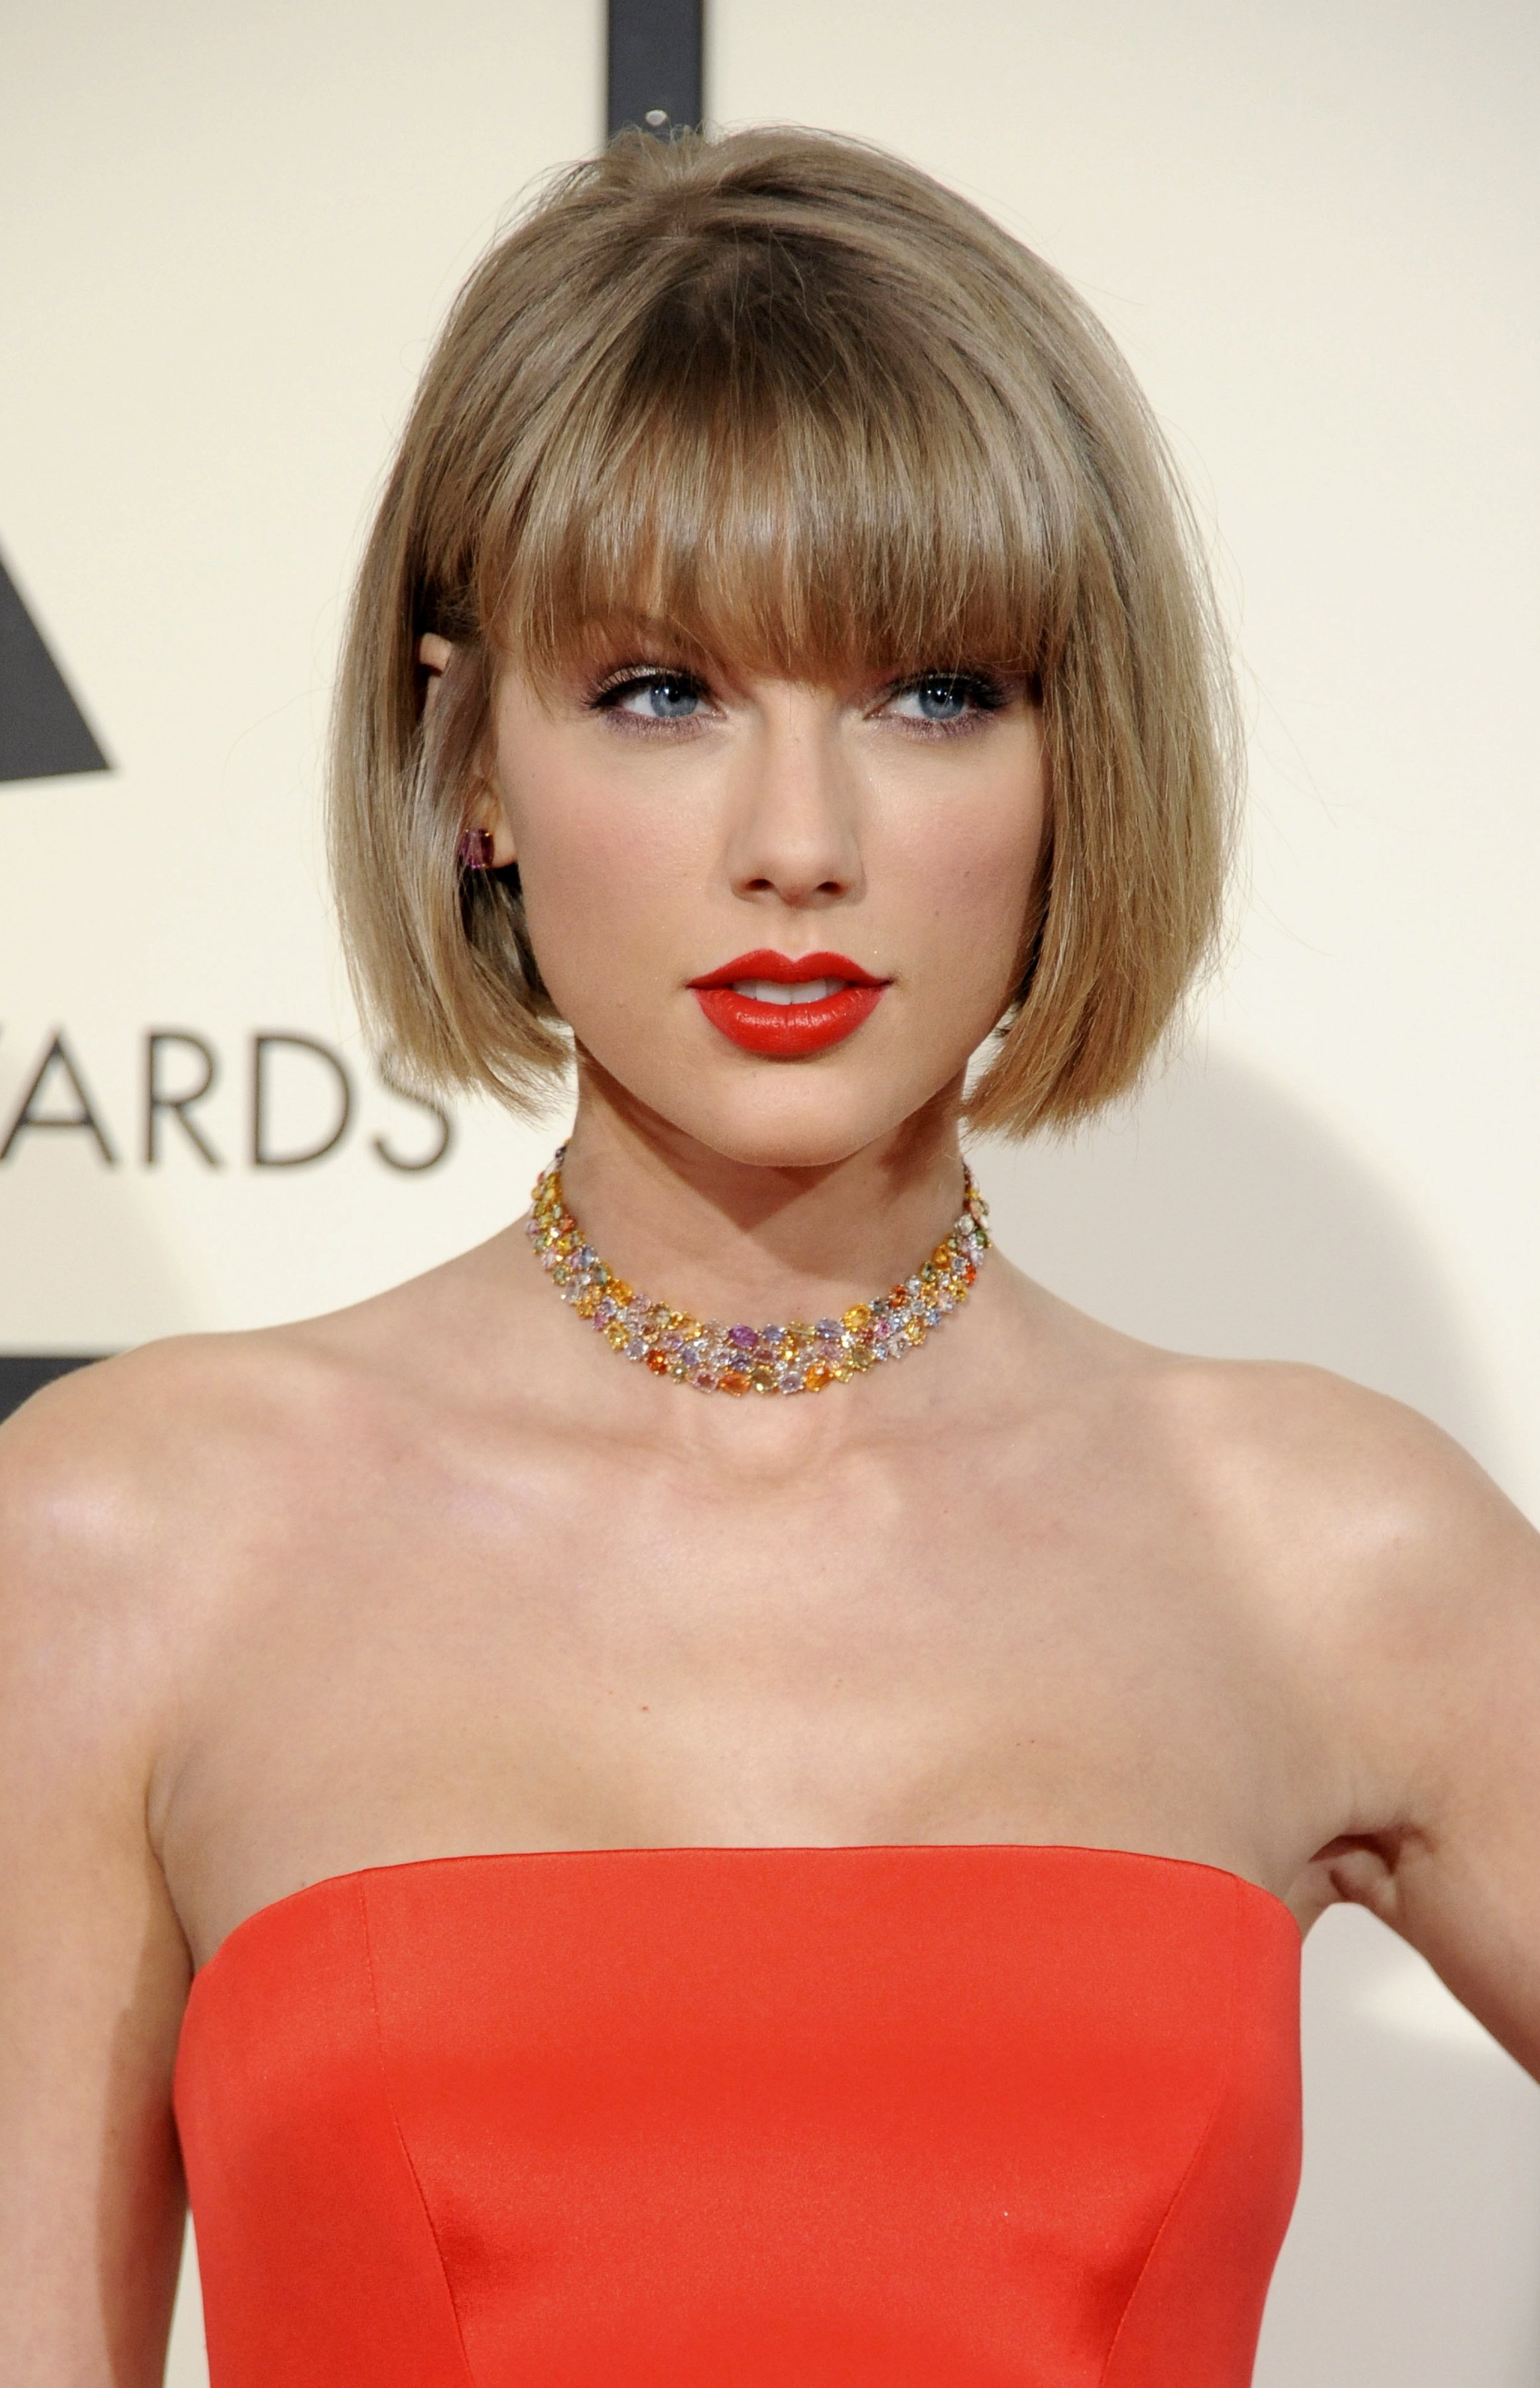 Taylor Swift at the 58th GRAMMY Awards. | Source: Shutterstock